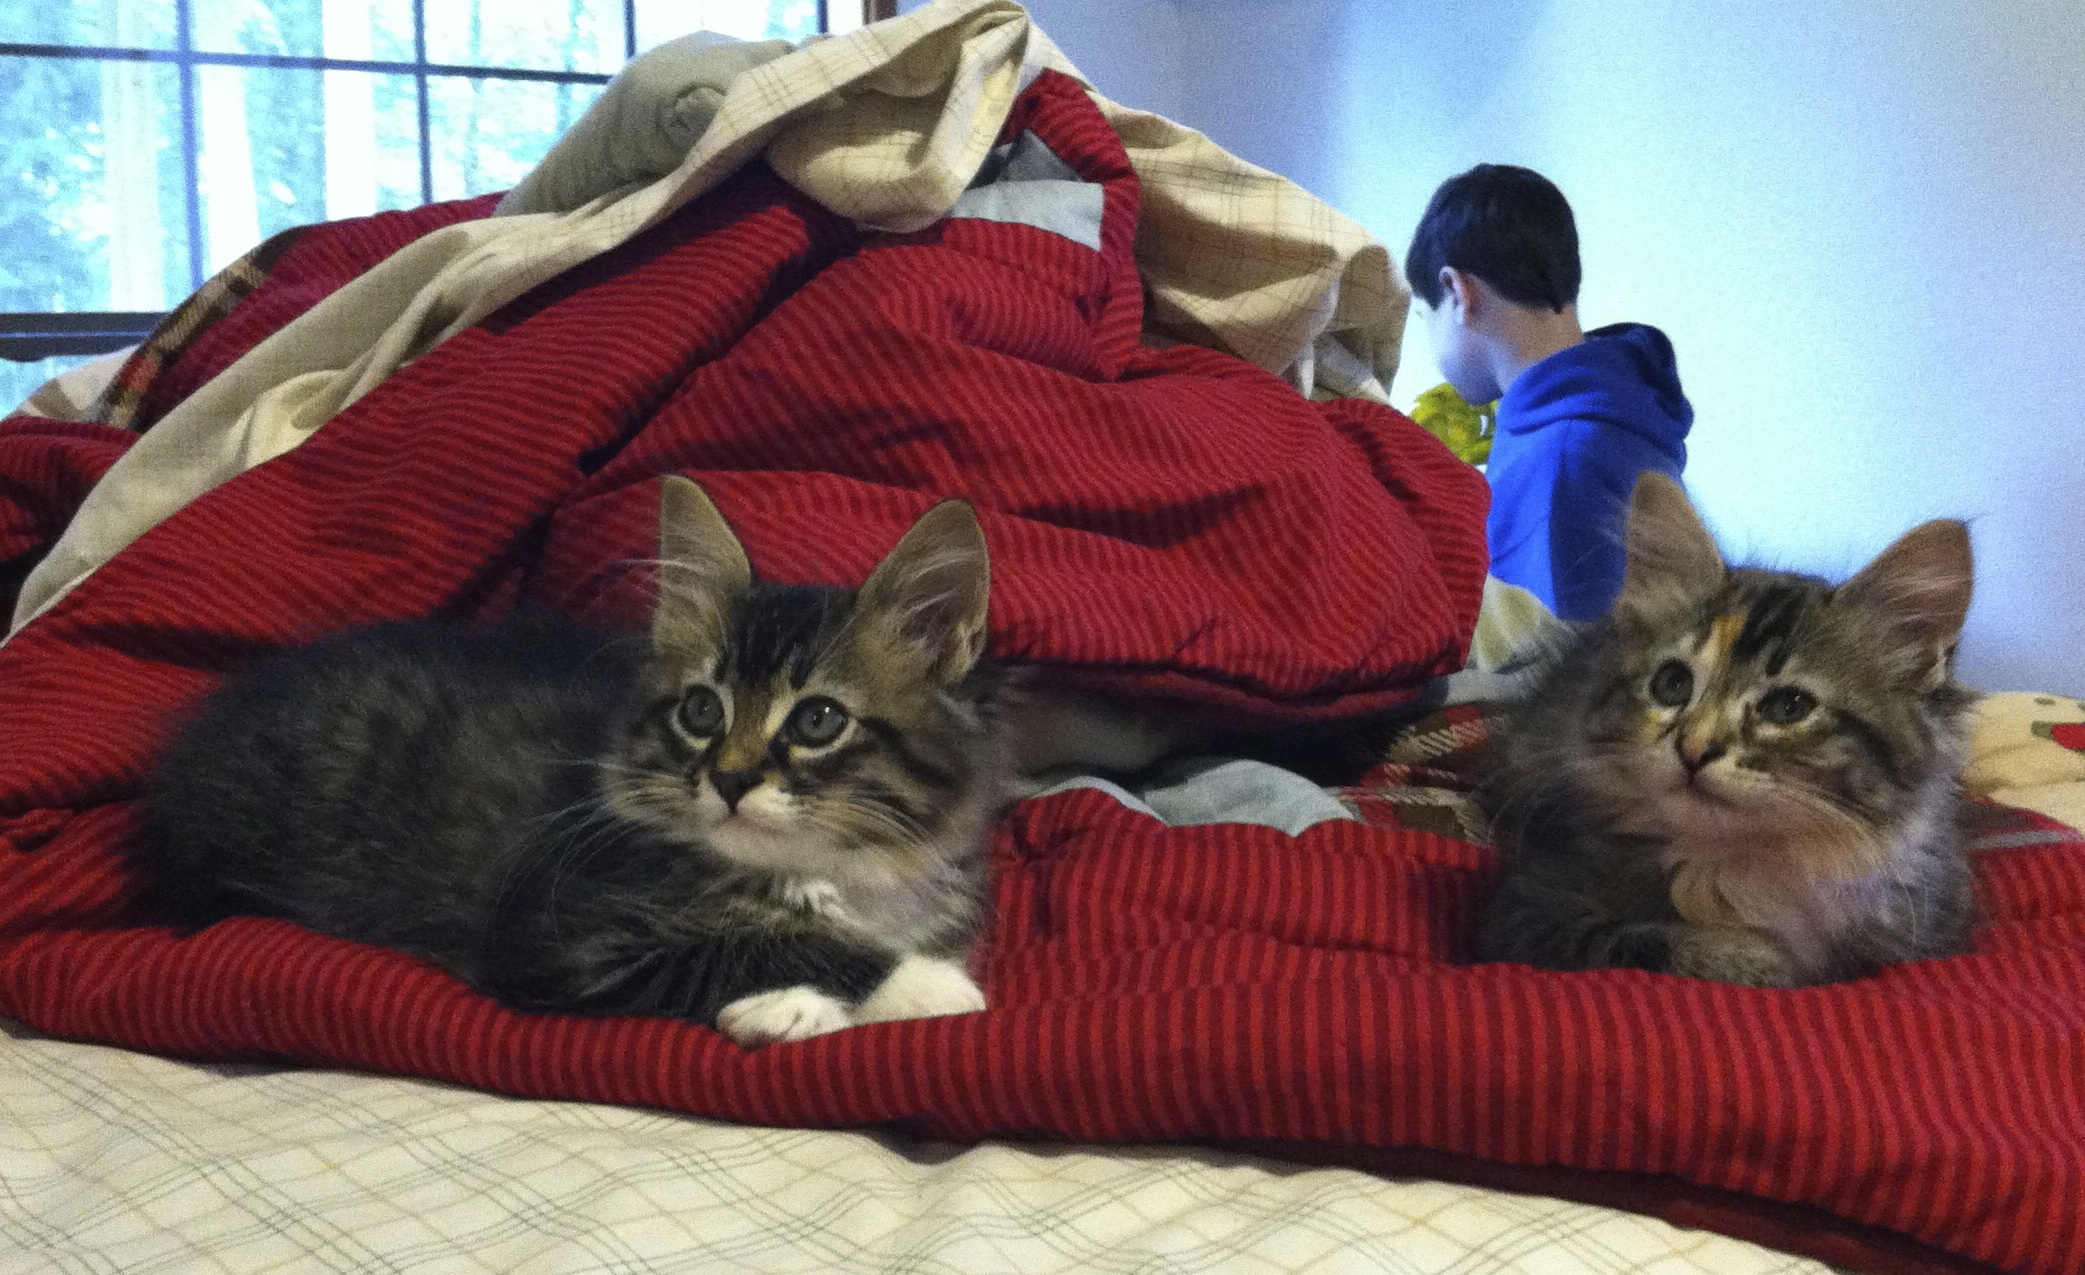 Caught them hanging out in his room when they were still teeny.